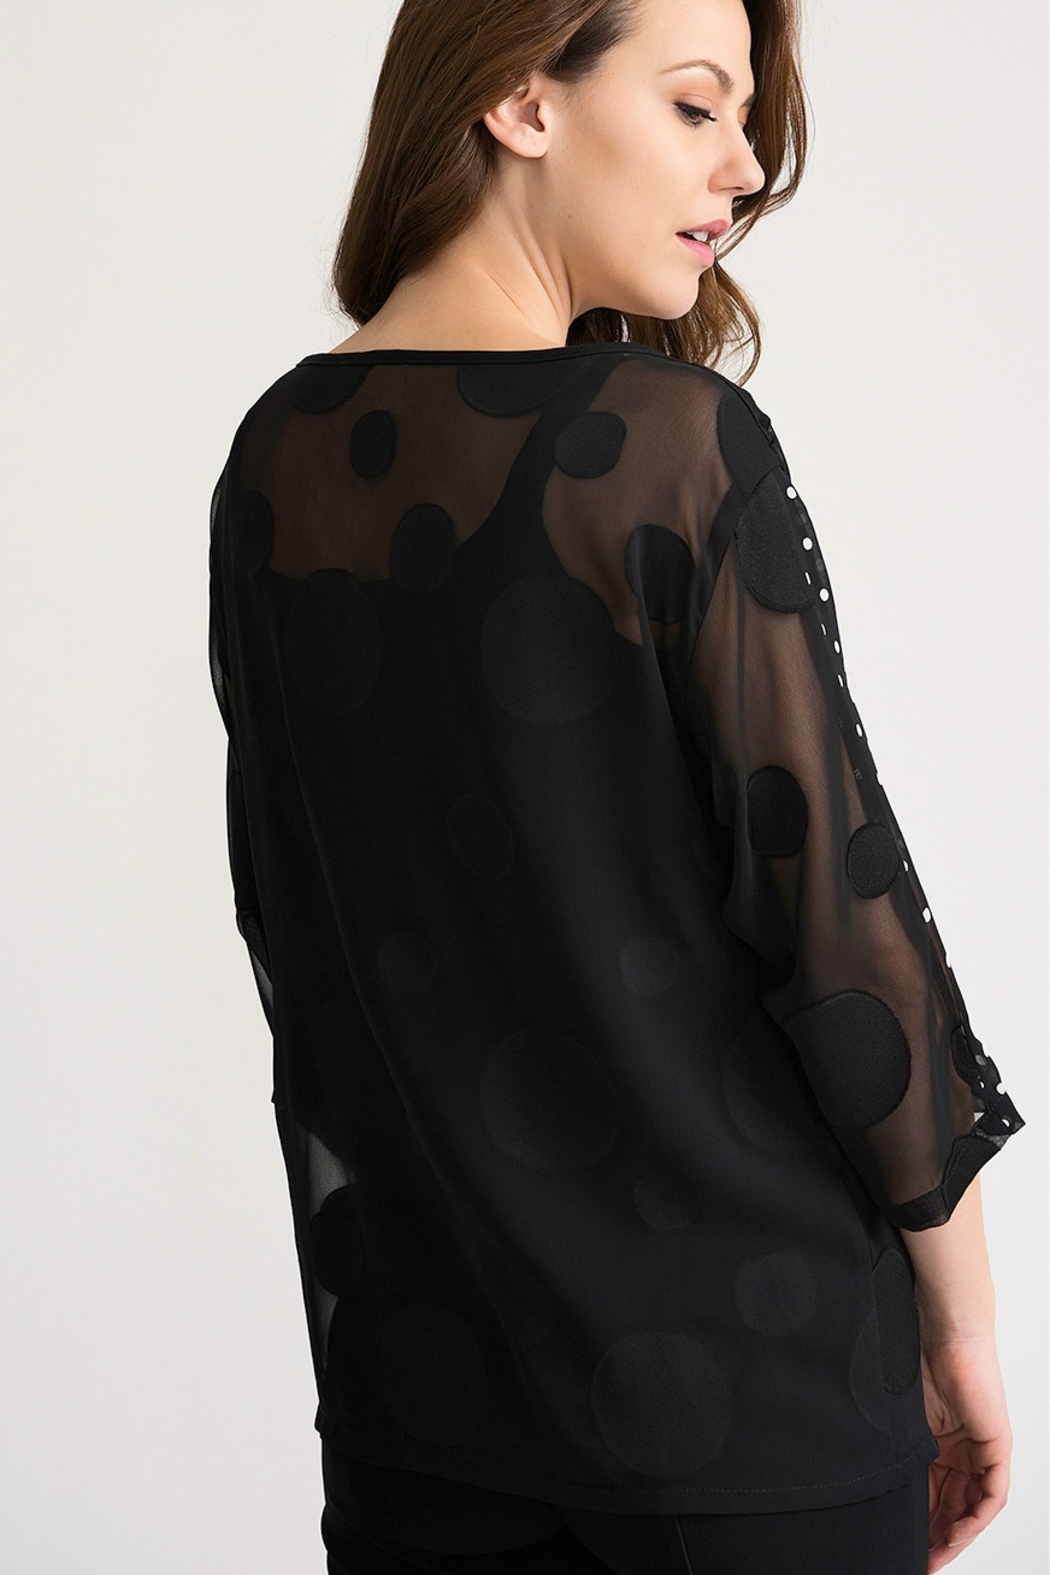 Joseph Ribikoff Black polka dot on black tunic top - Front Full Image